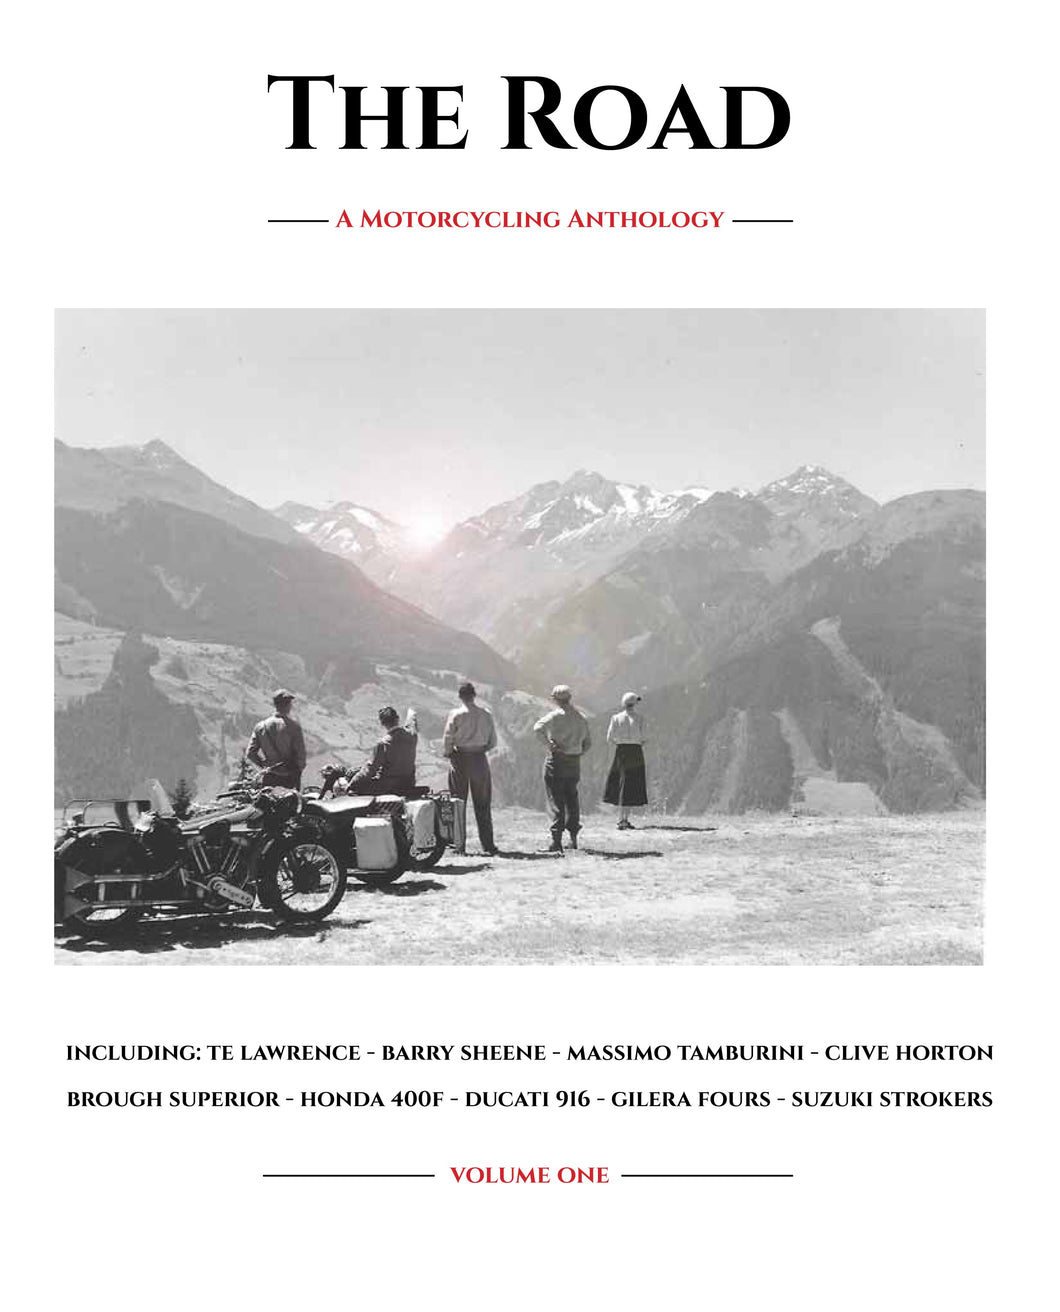 The Road : A Motorcycling Anthology - Volume One